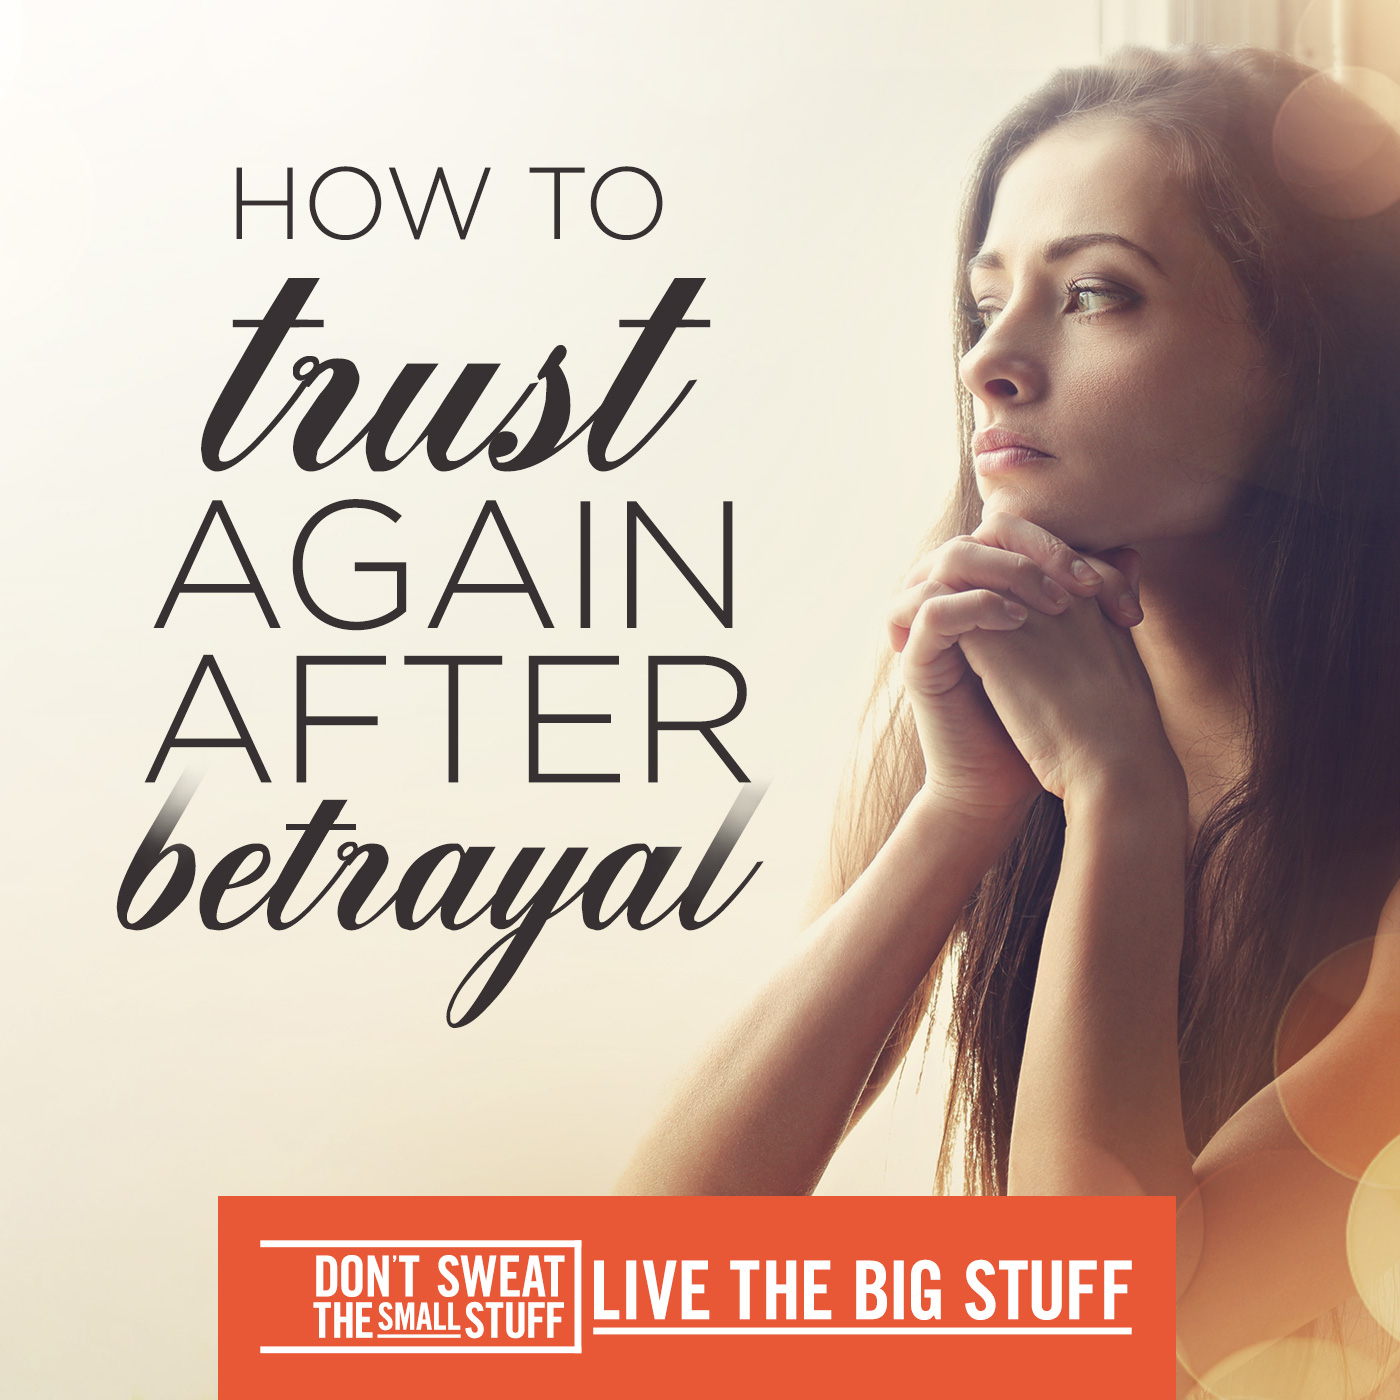 How to trust again after betrayal